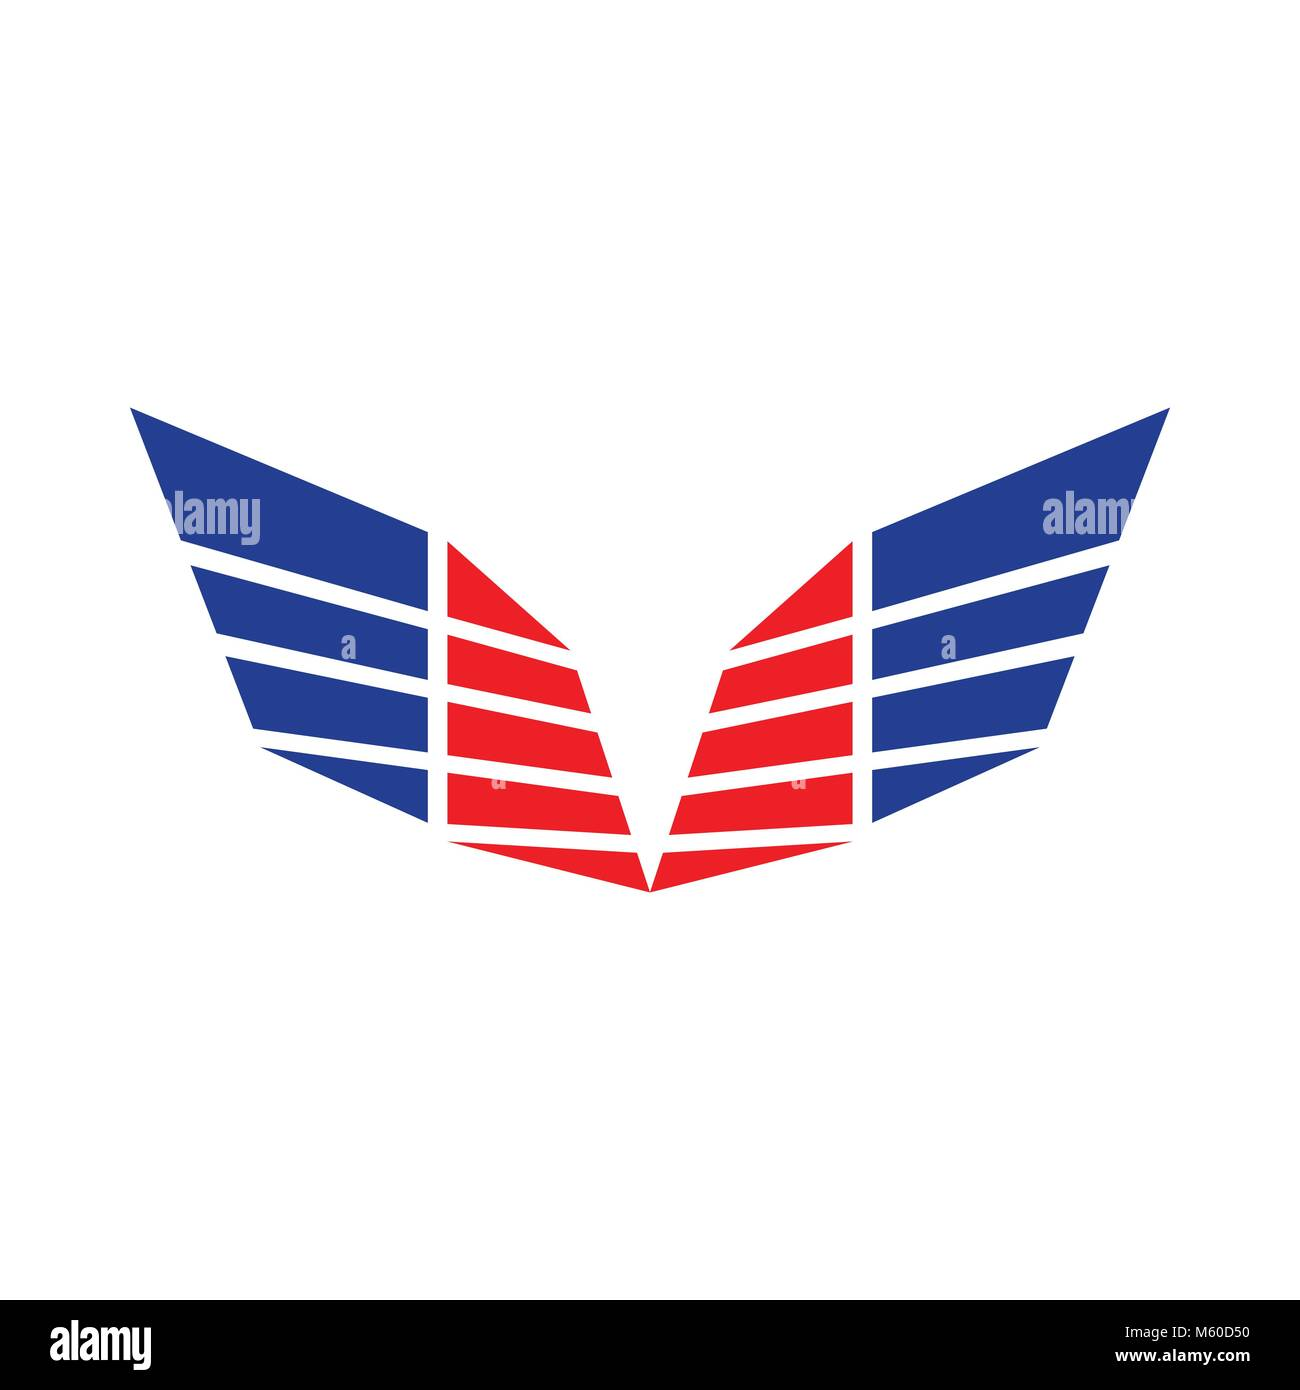 Abstract Sharp Wings Red Blue Colors Symbol Logo Design - Stock Vector